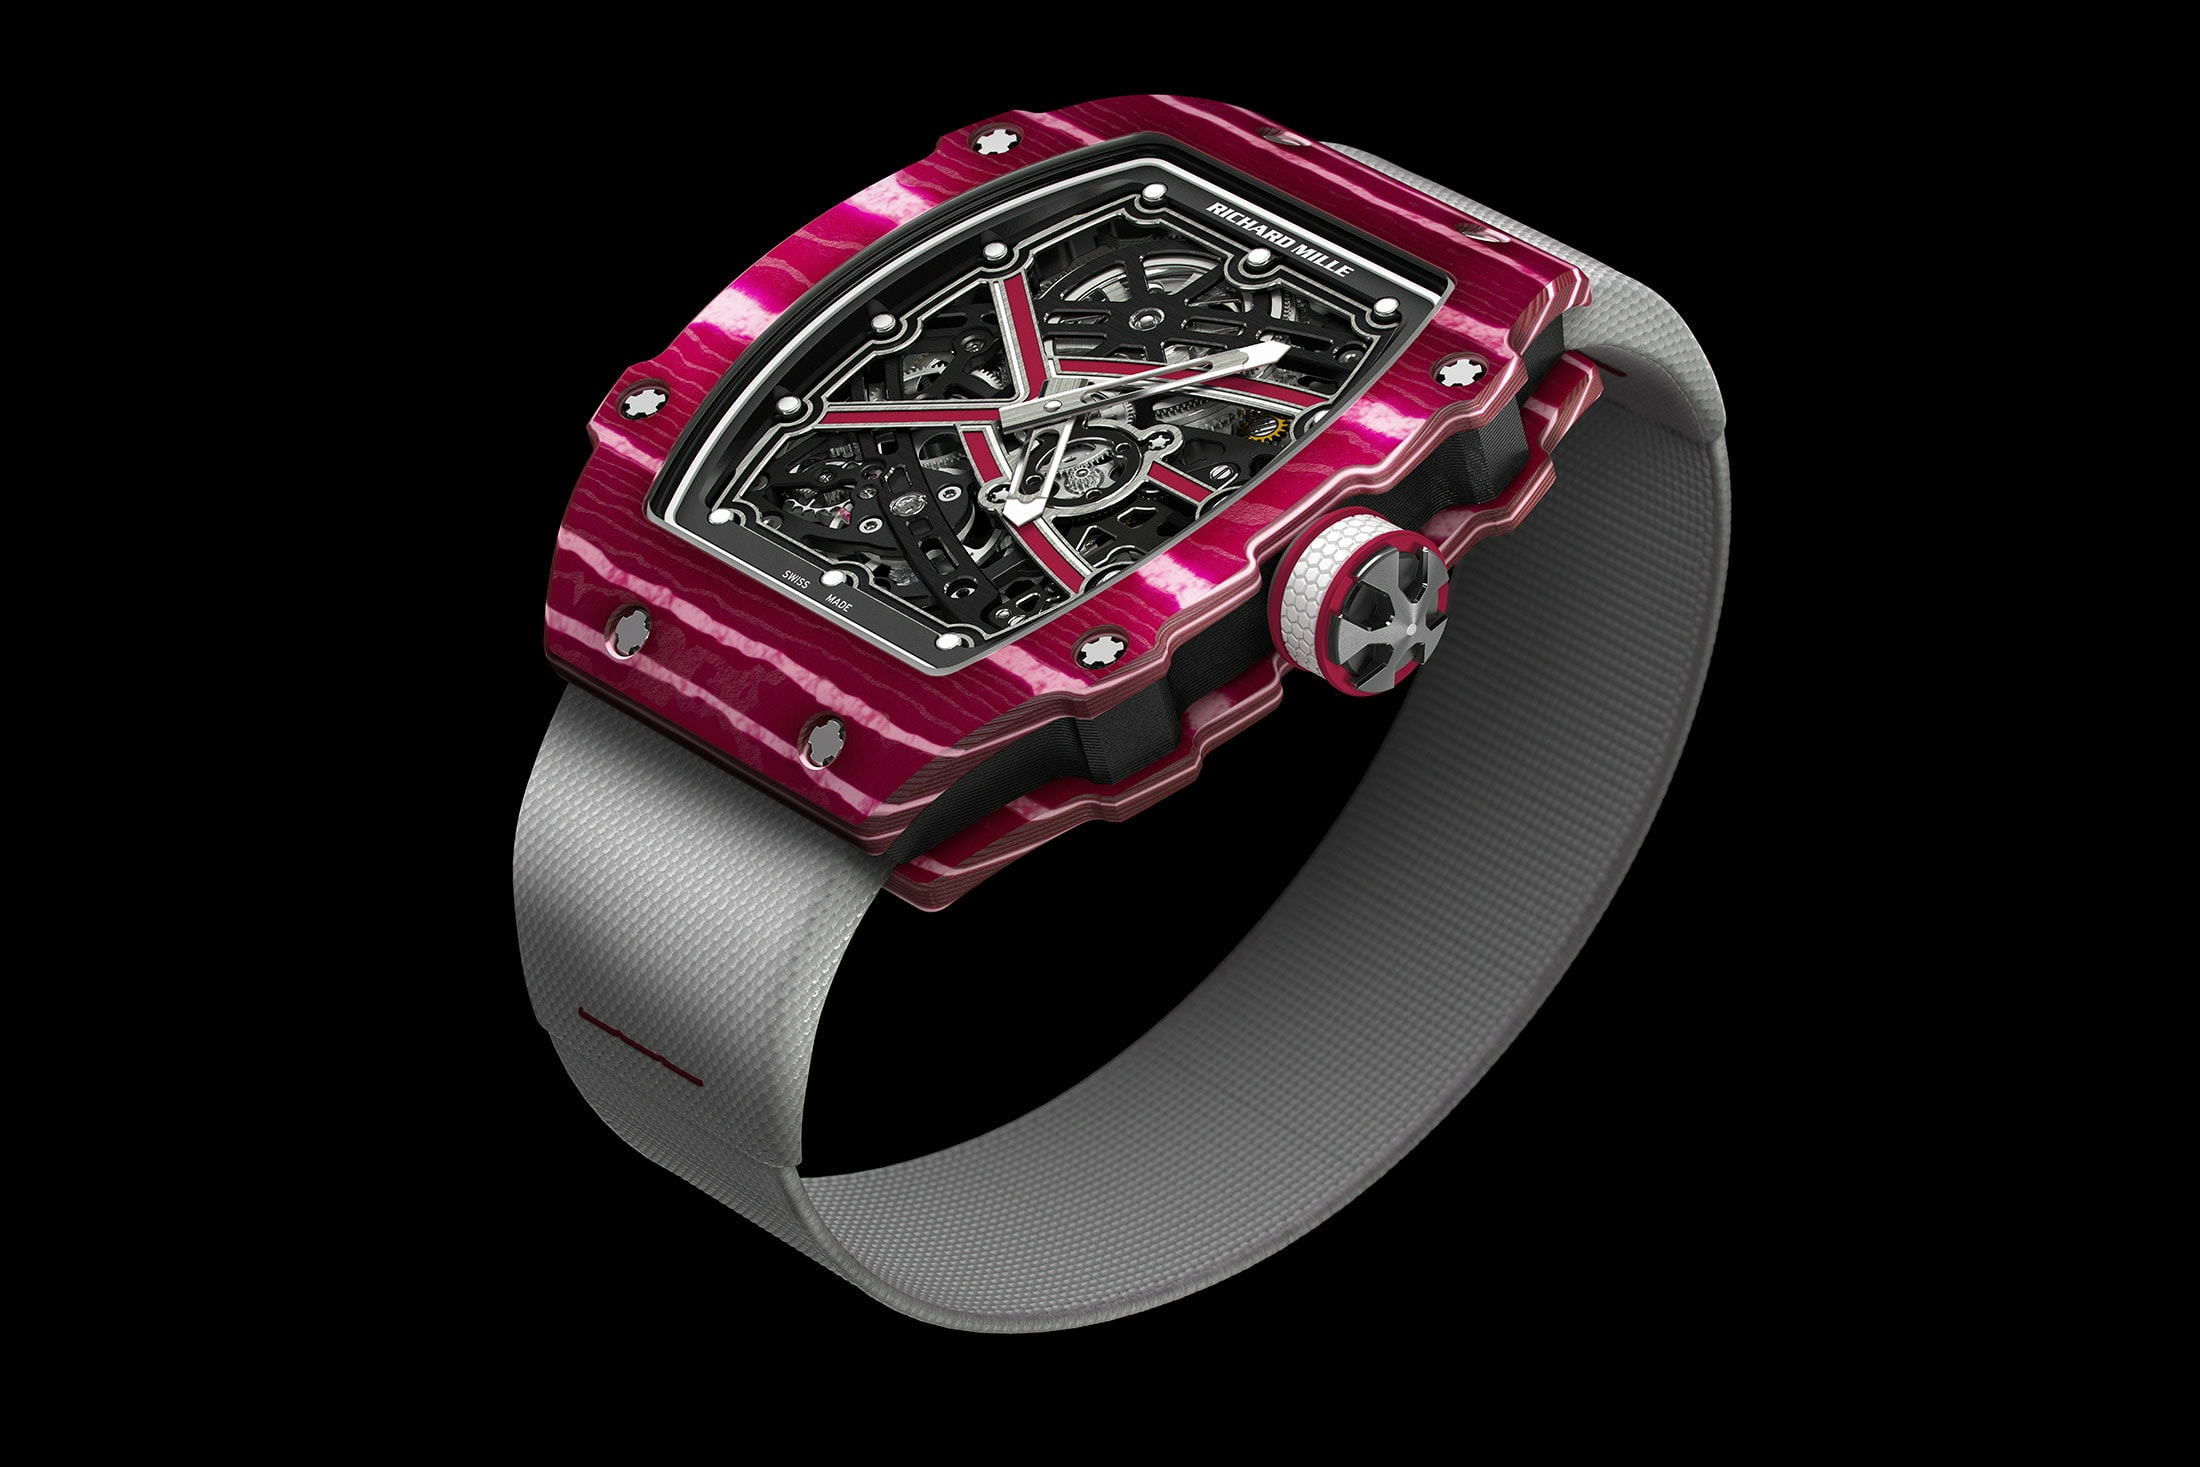 The Richard Mille RM67-02 High Jump. Introducing: The Richard Mille 67-02 Sprint And High Jump Introducing: The Richard Mille 67-02 Sprint And High Jump rm 08